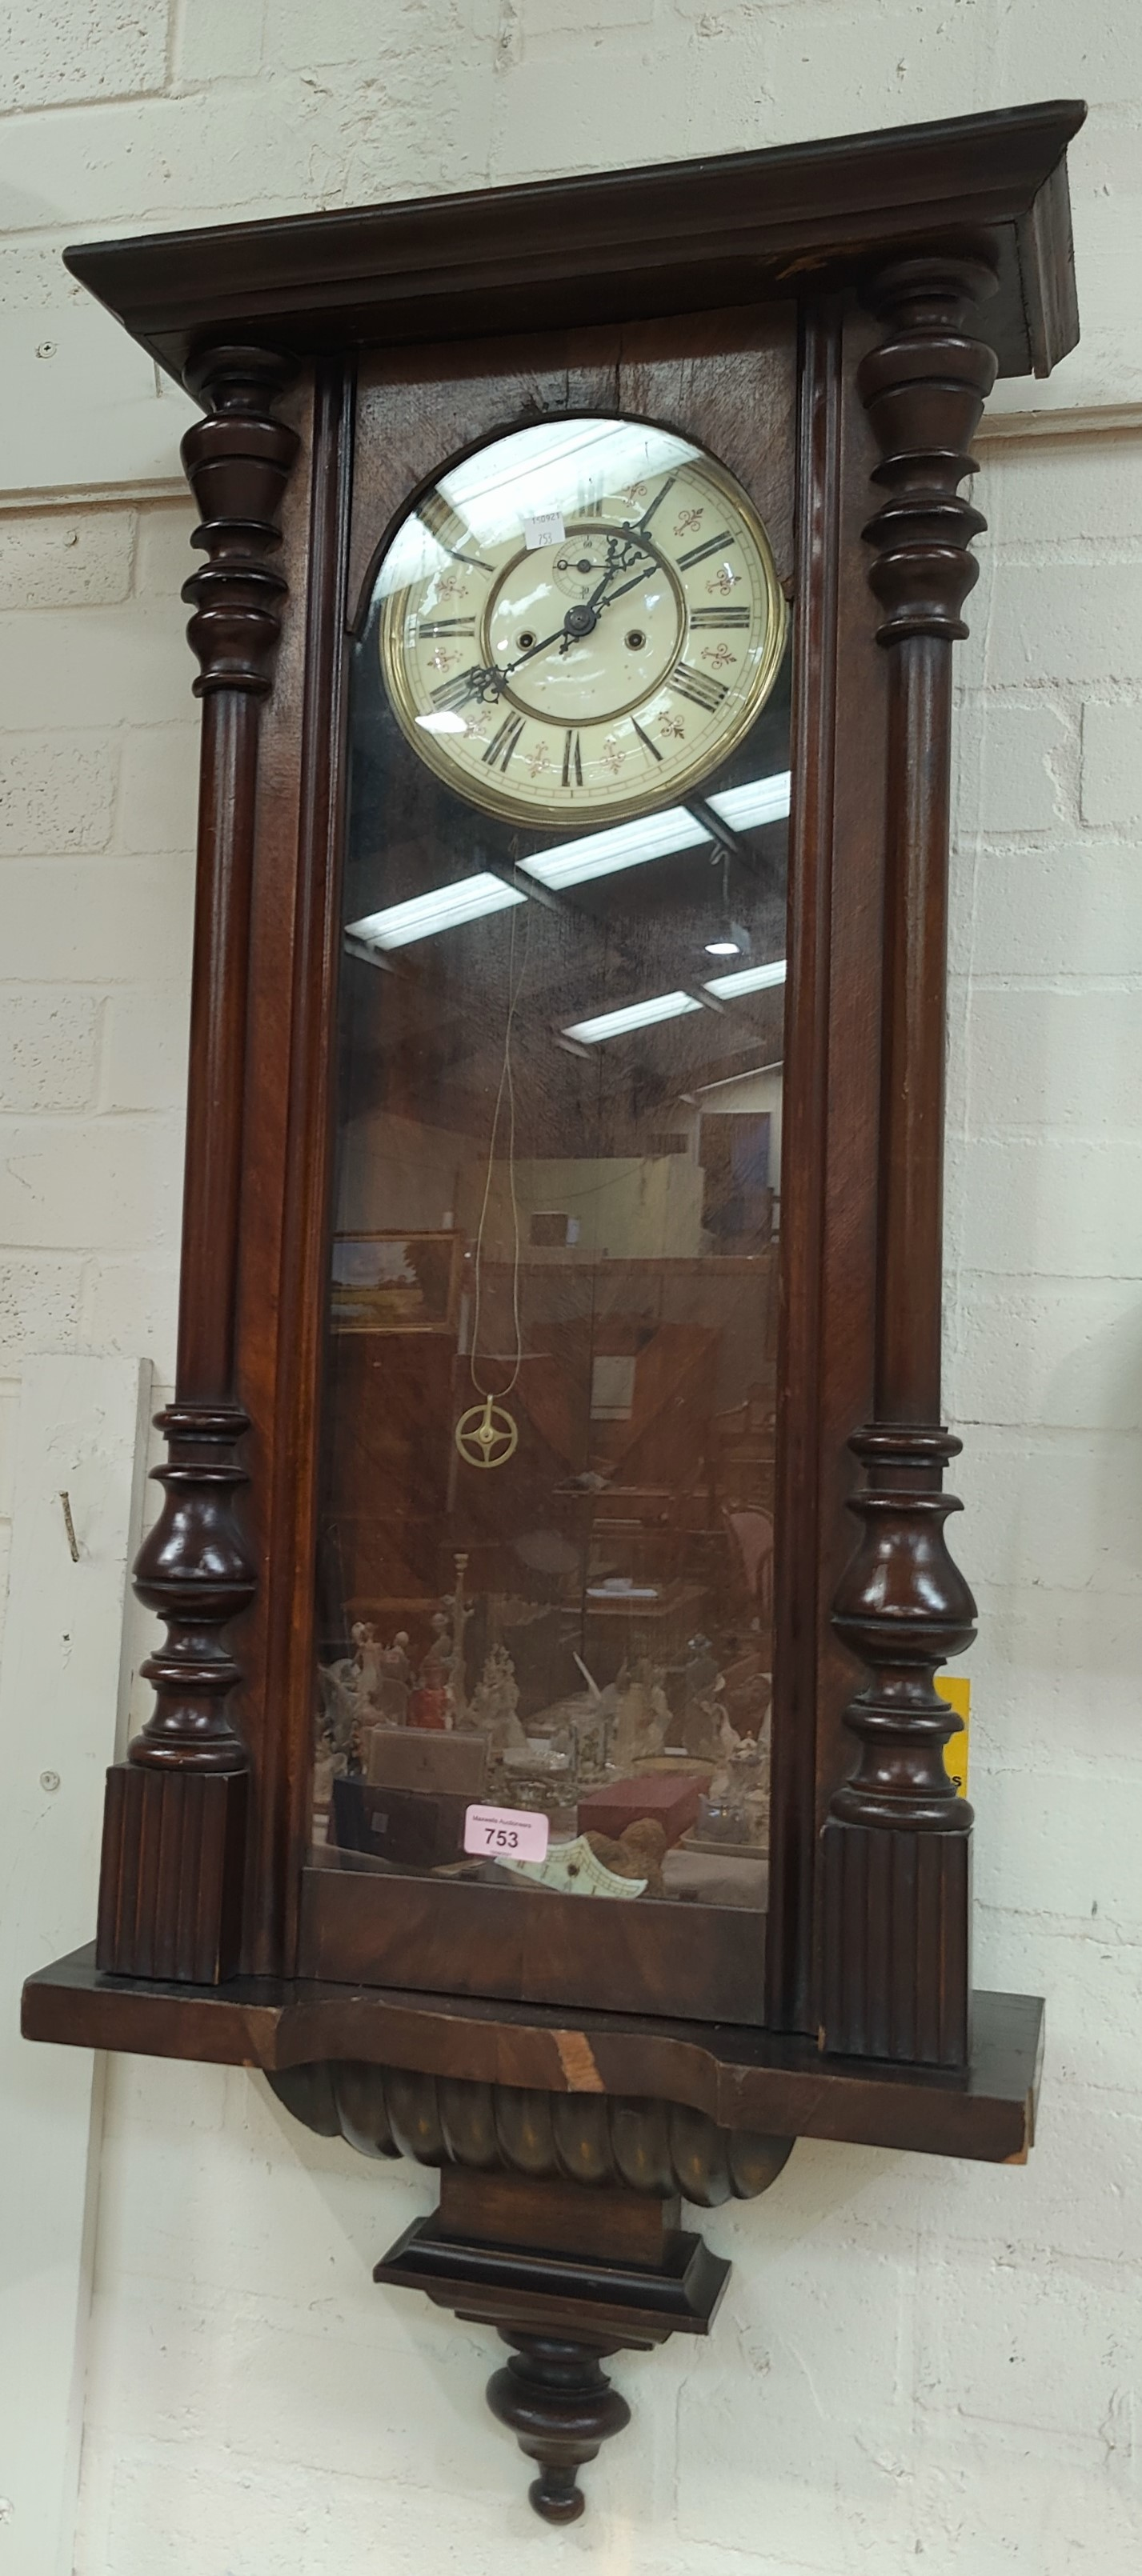 A 19th century Vienna wall clock with double weight driven movement (no crest)